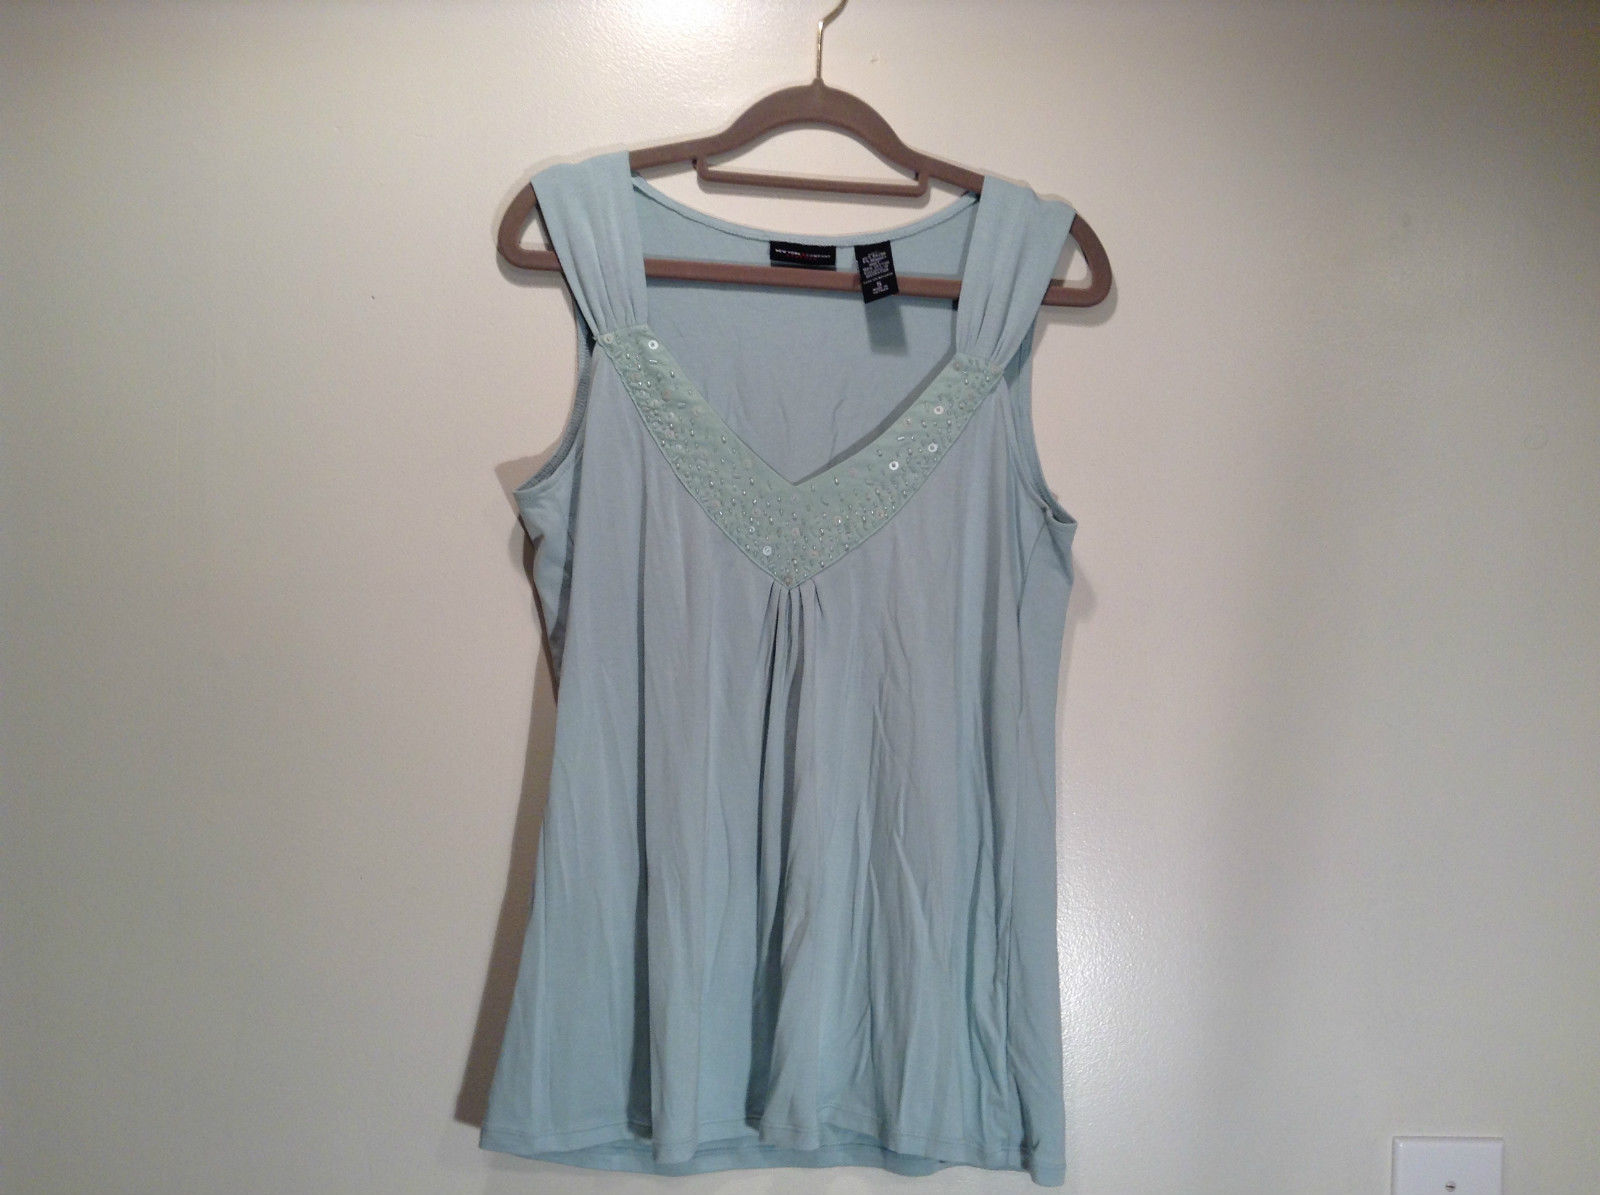 New York and Company Size S Sleeveless Tank Top Light Blue Green Graphic Front